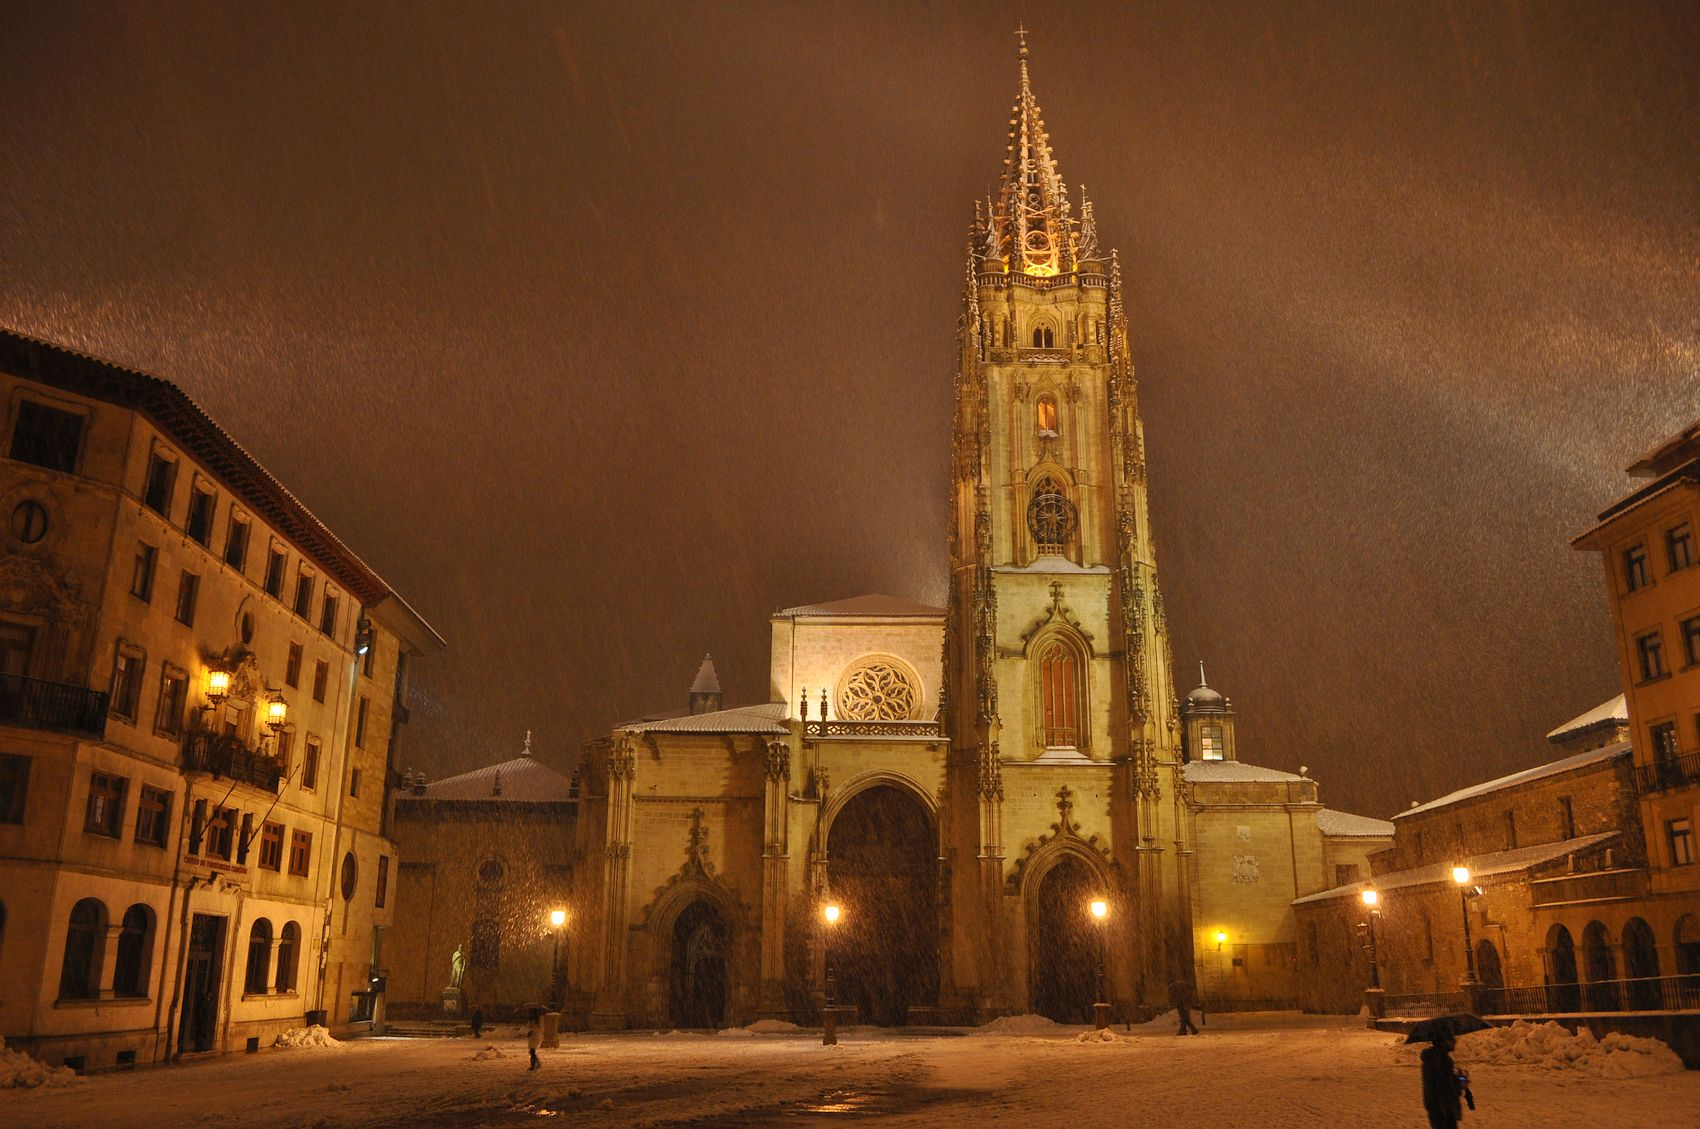 Winter in Oviedo